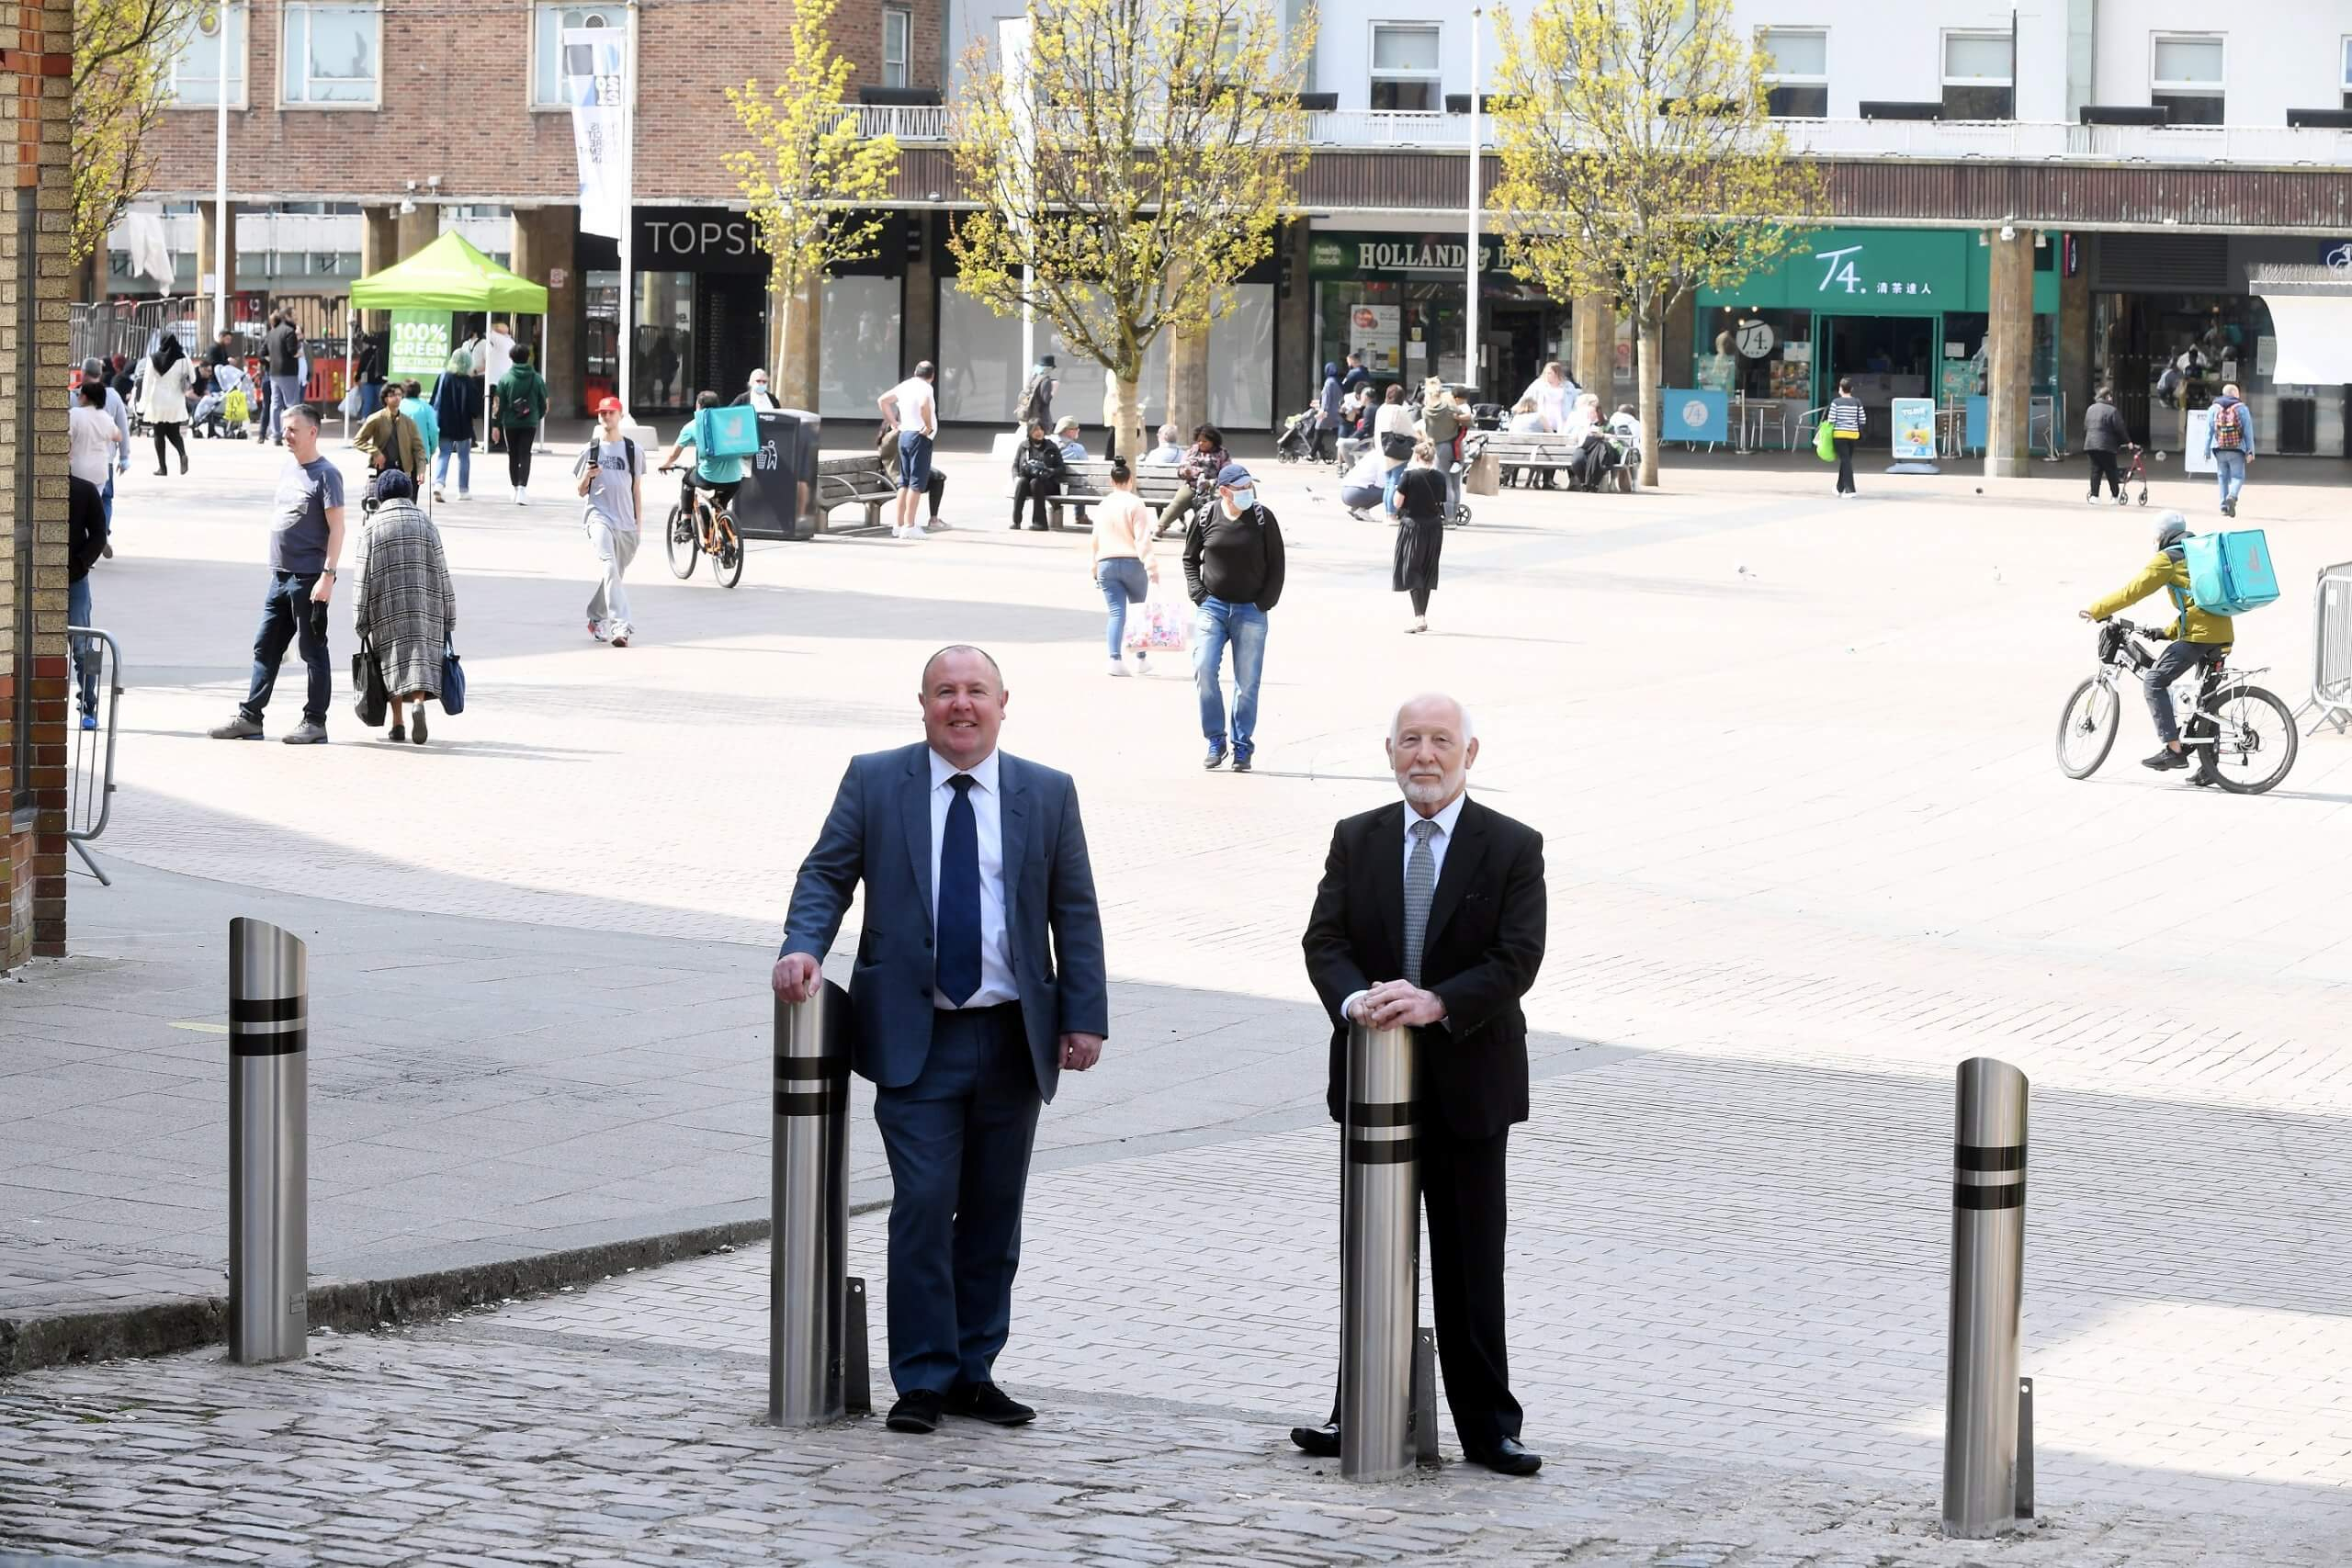 Midlands firm wins major city centre security contract